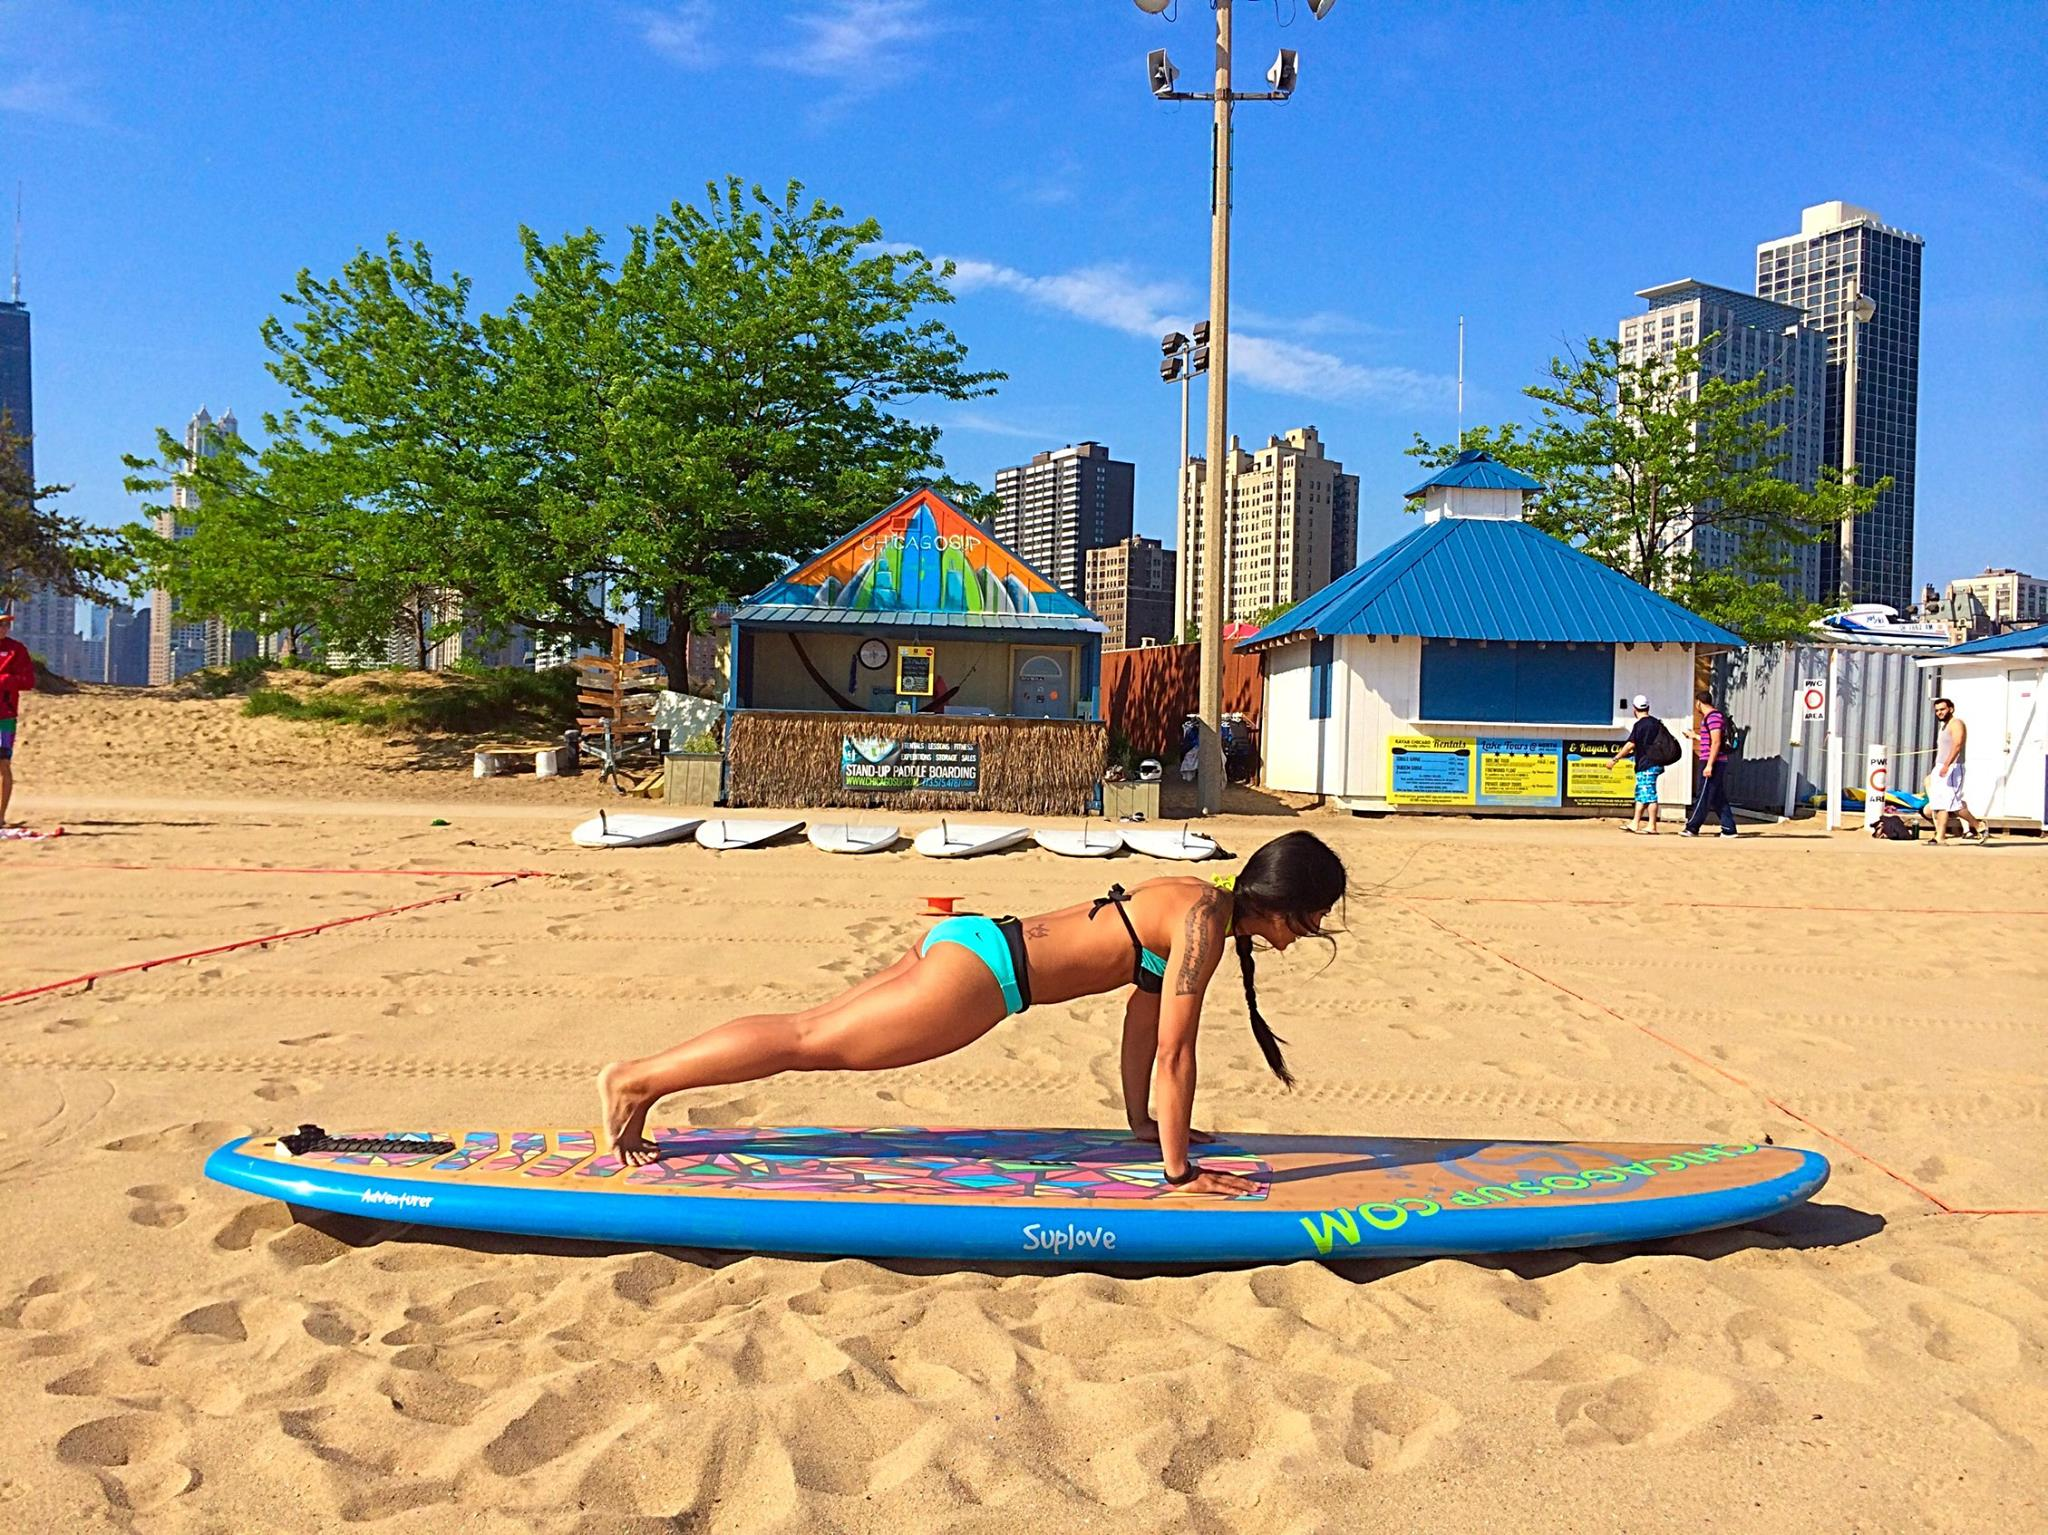 Betina on a stand up paddle board Crosstown Fitness asweatlife fabfitchicago standup paddle board in chicago